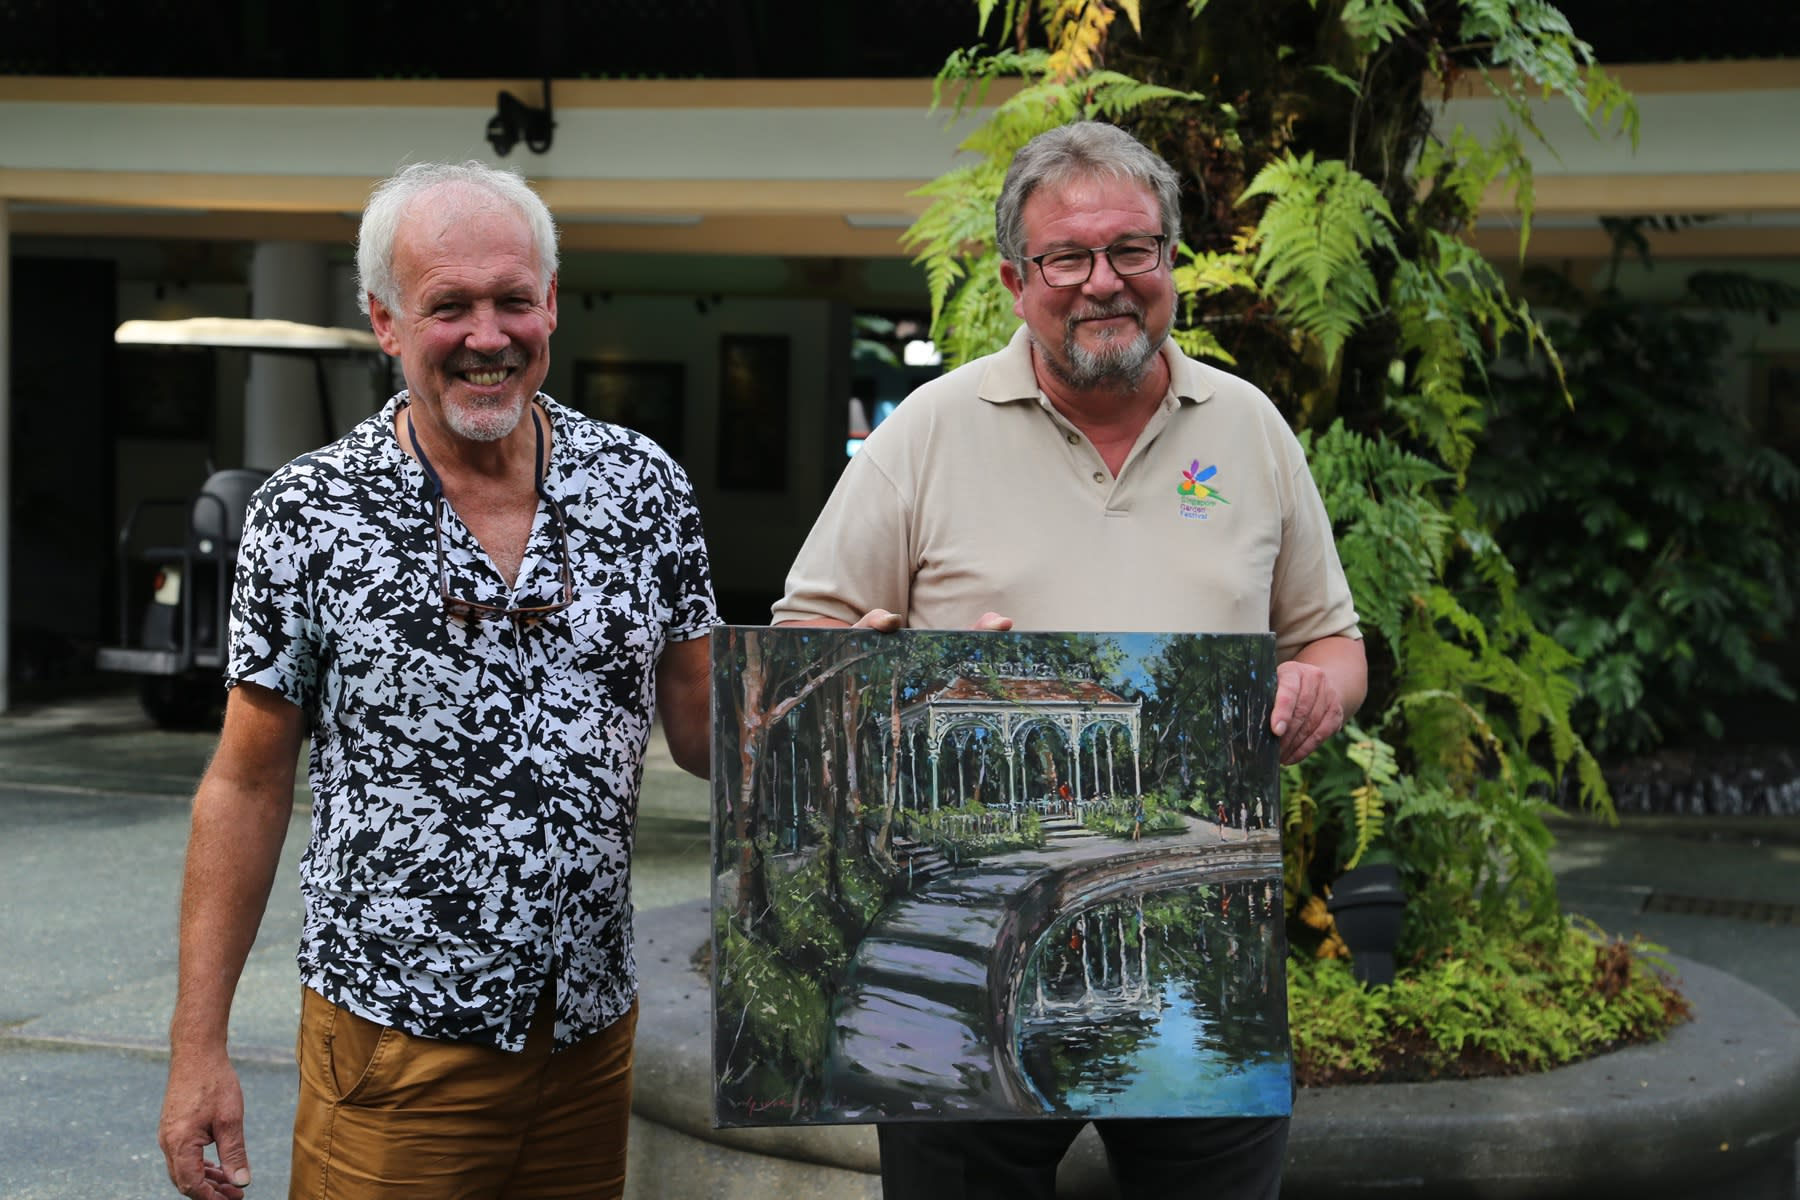 07 OCTOBER 2019 SINGAPORE BOTANIC GARDENS Artist Gerard Byrne with Dr Nigel Taylor, SBG Director The Swan Lake Gazebo, Dr Taylor private Art Collection photo: Agata Byrne